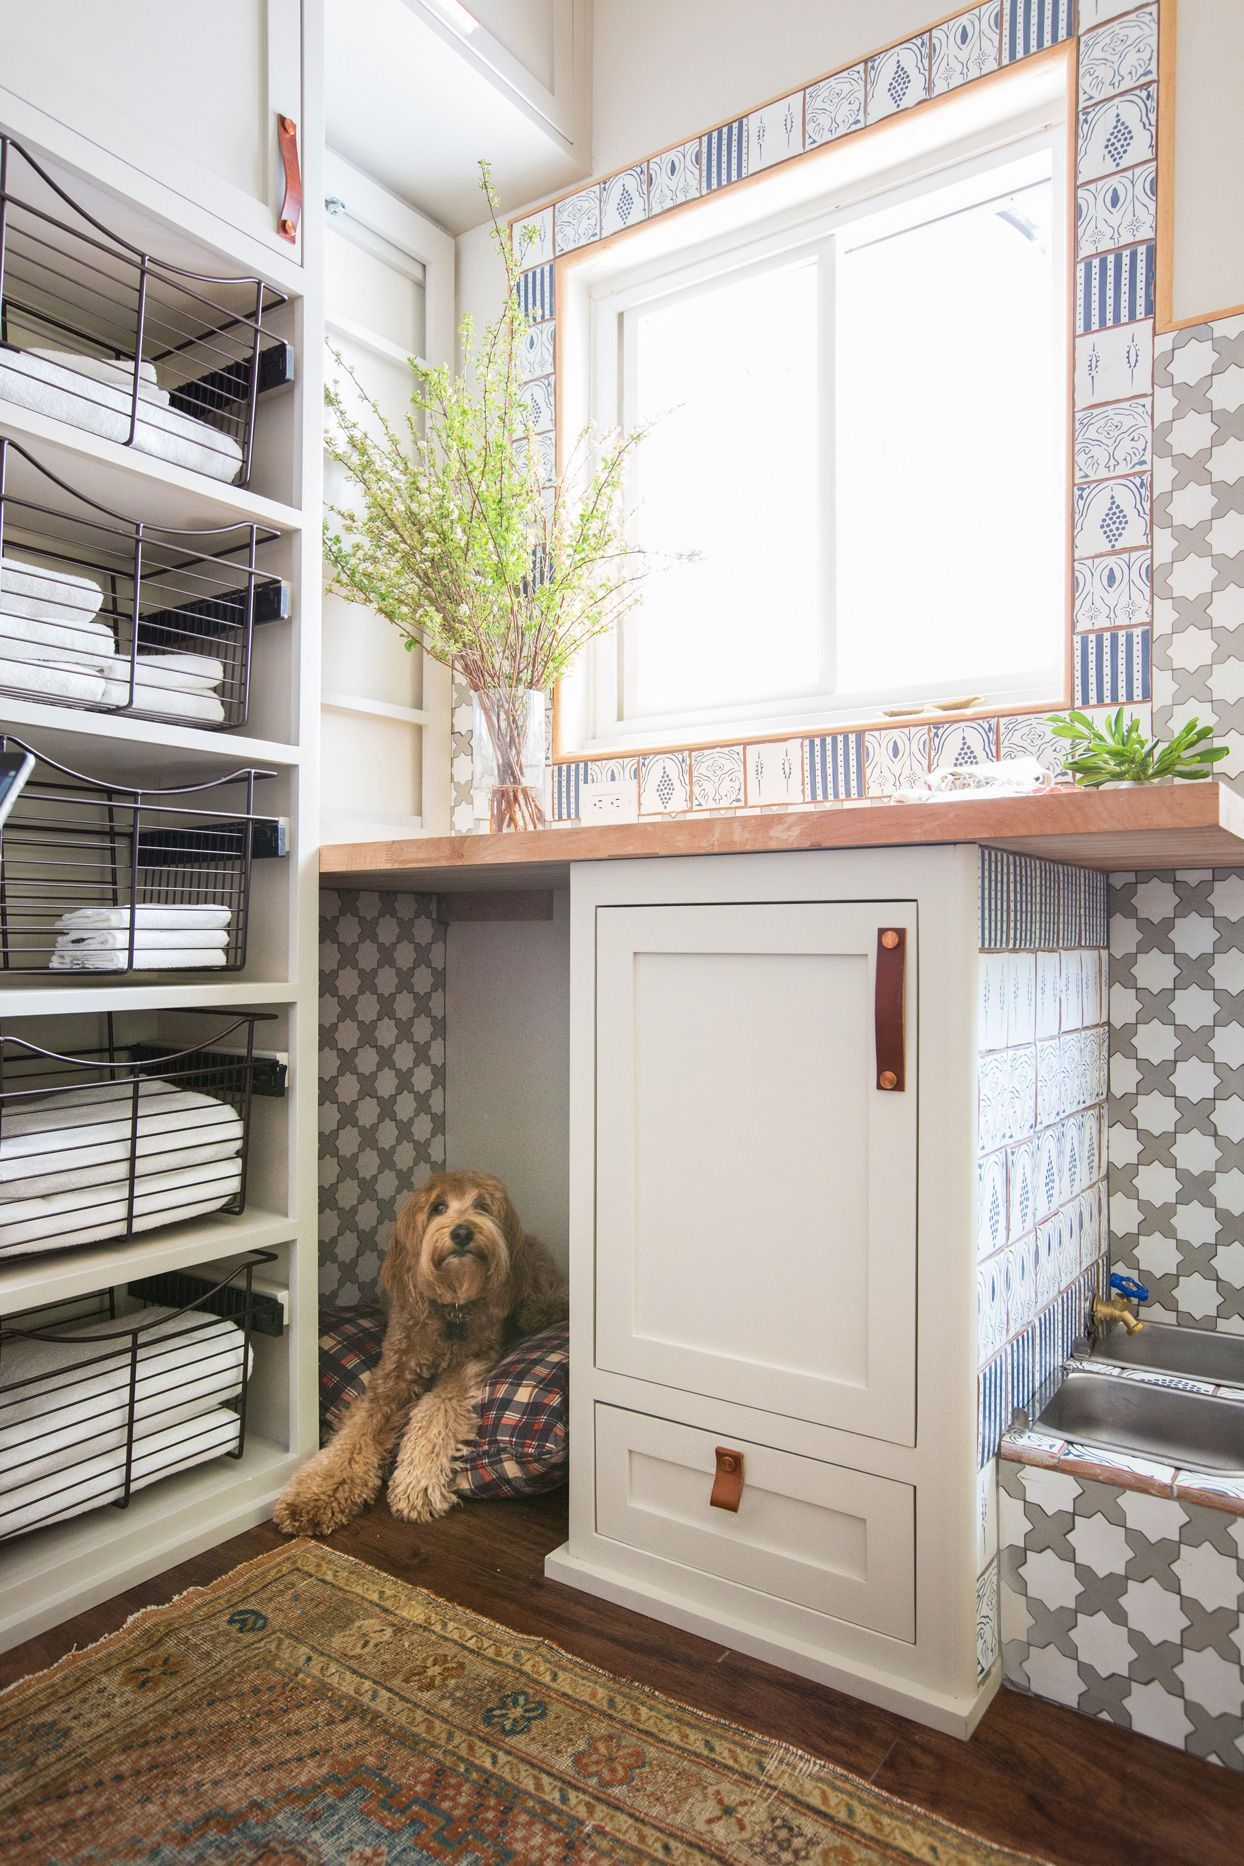 All family members want privacy from time to time, and you can provide your pet that same luxury with a space of their own. Tuck a pet bed under shelves or in small nooks to keep it out of heavy traffic zones and offer pets someplace quiet and secure to rest. #petstorageideas #storageandorganizationideas #petsuppliesorganization #dog #cat #petparent #bhg